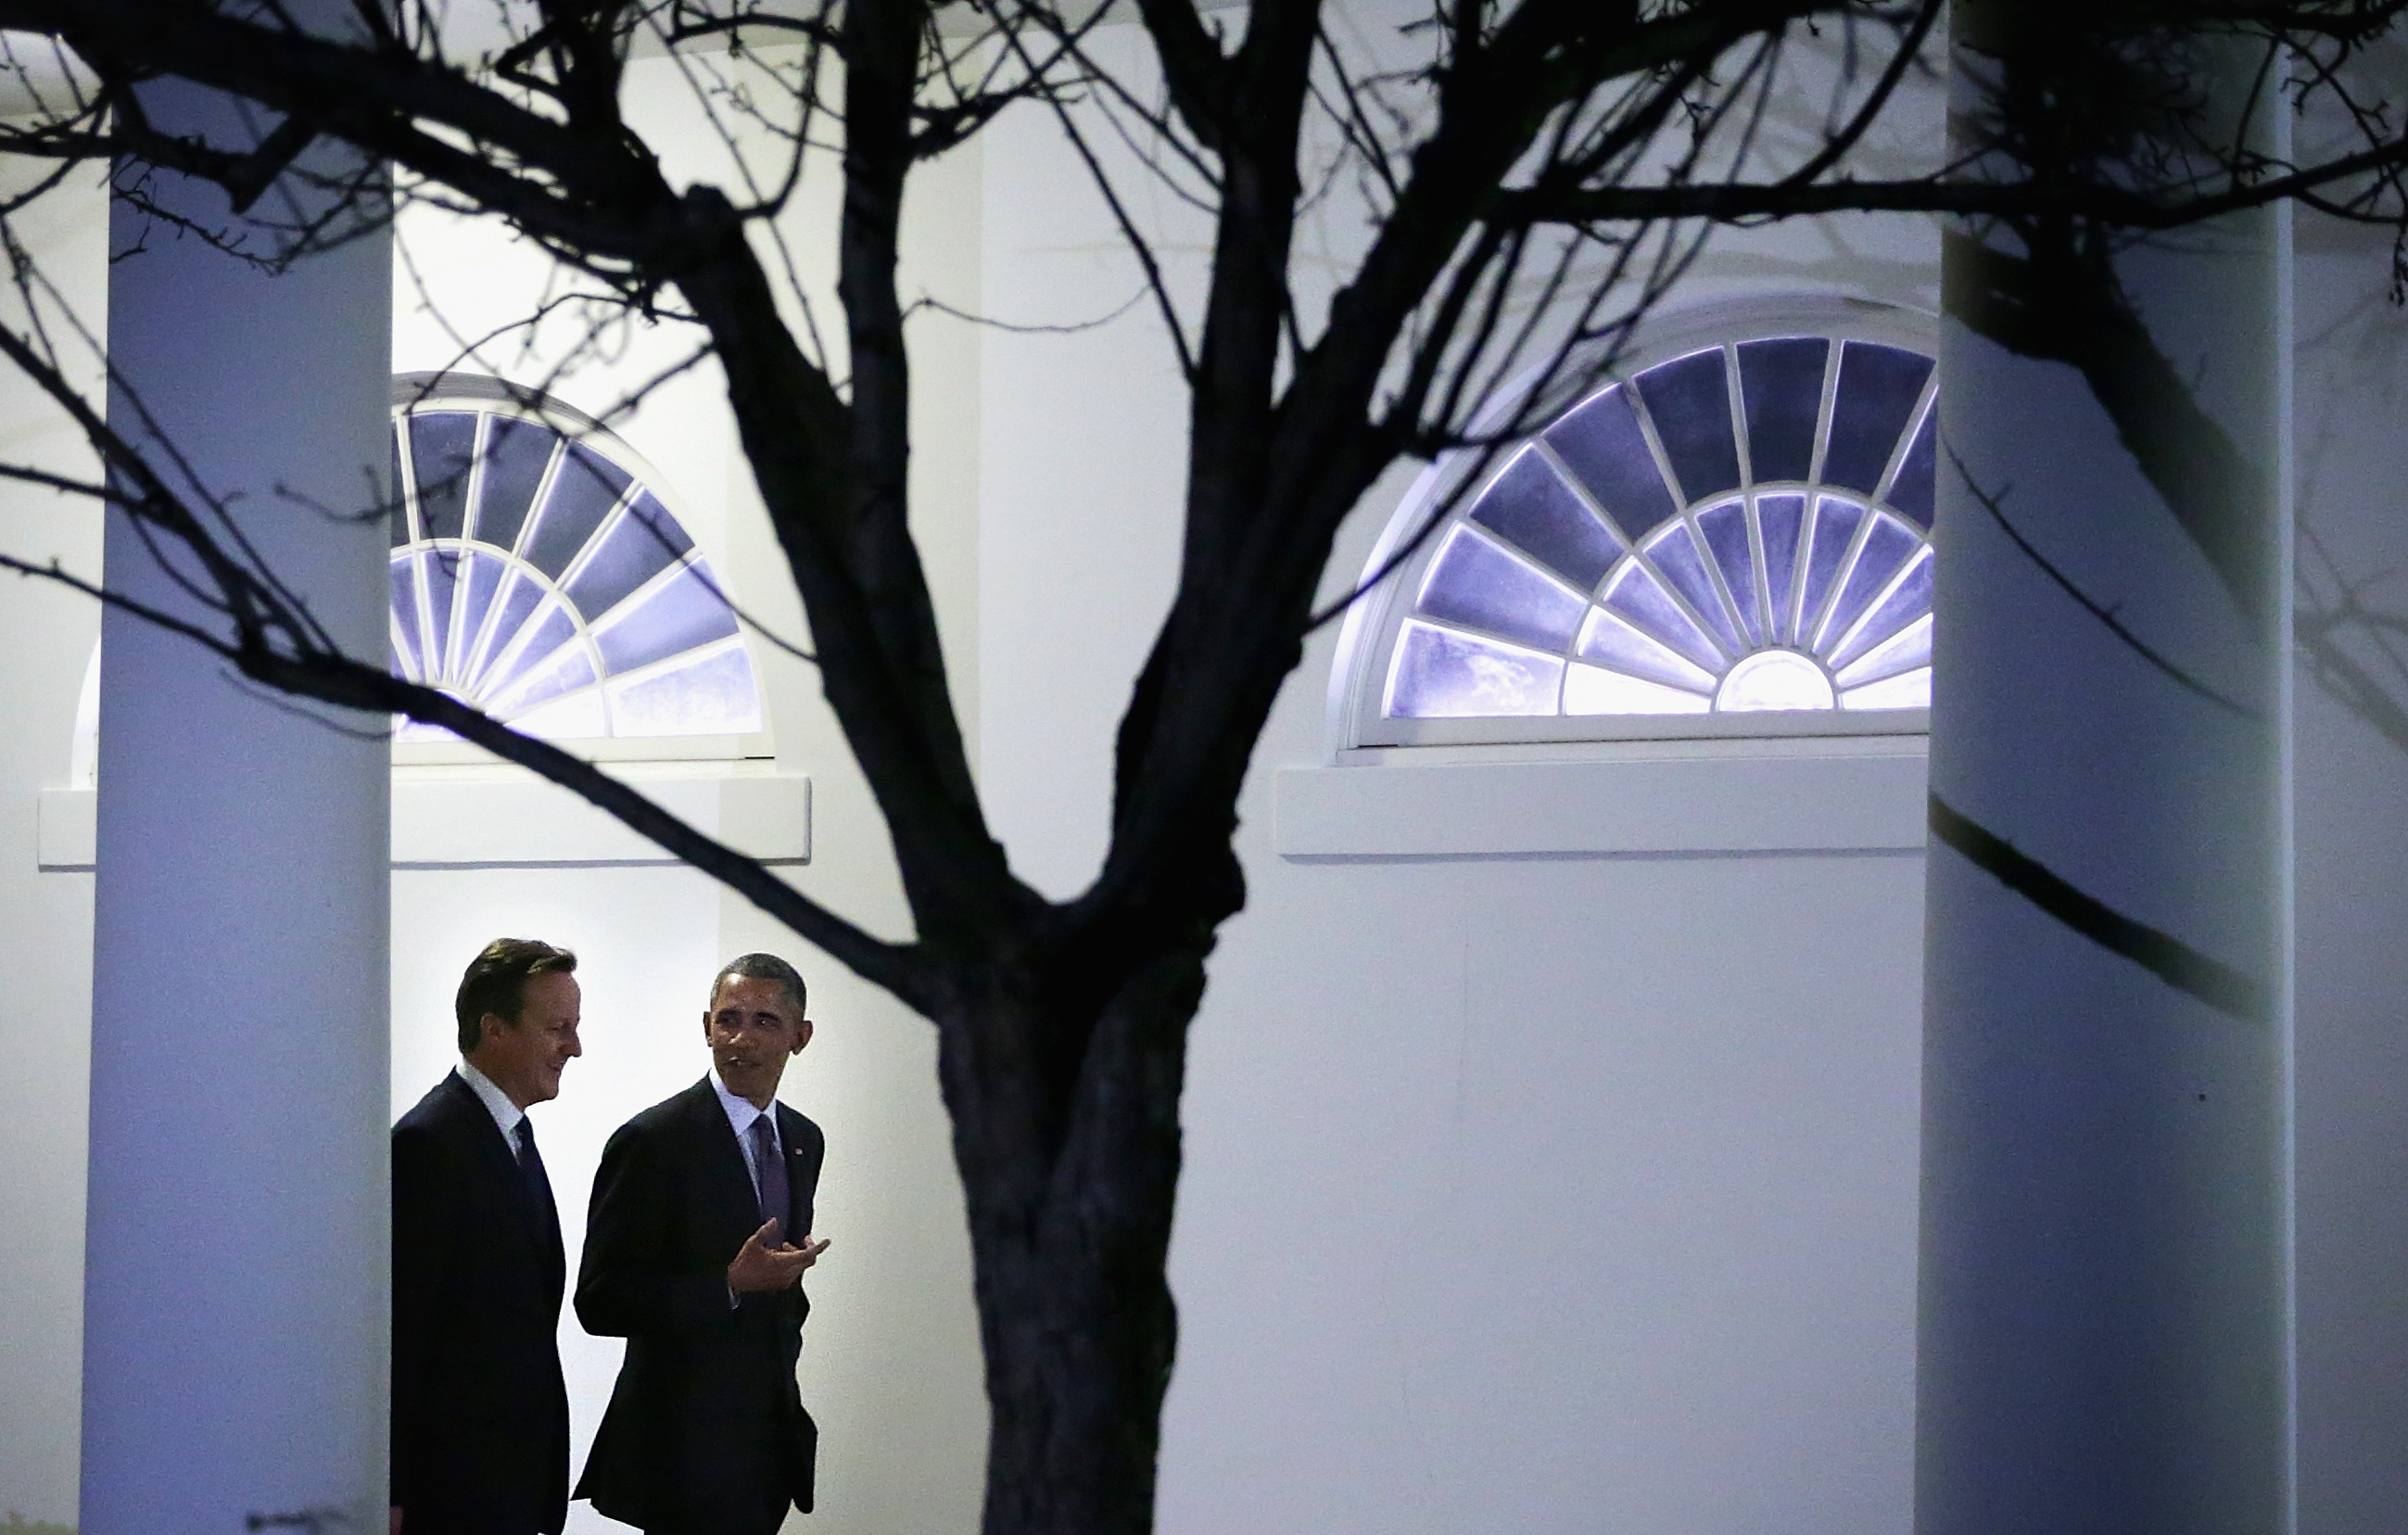 U.S. President Barack Obama (R) walks with British Prime Minister David Cameron (L) through the colonnade as they are on their way for a working dinner at the Blue Room of the White House January 15, 2015 in Washington, DC. Prime Minister Cameron is on a two-day visit to Washington.